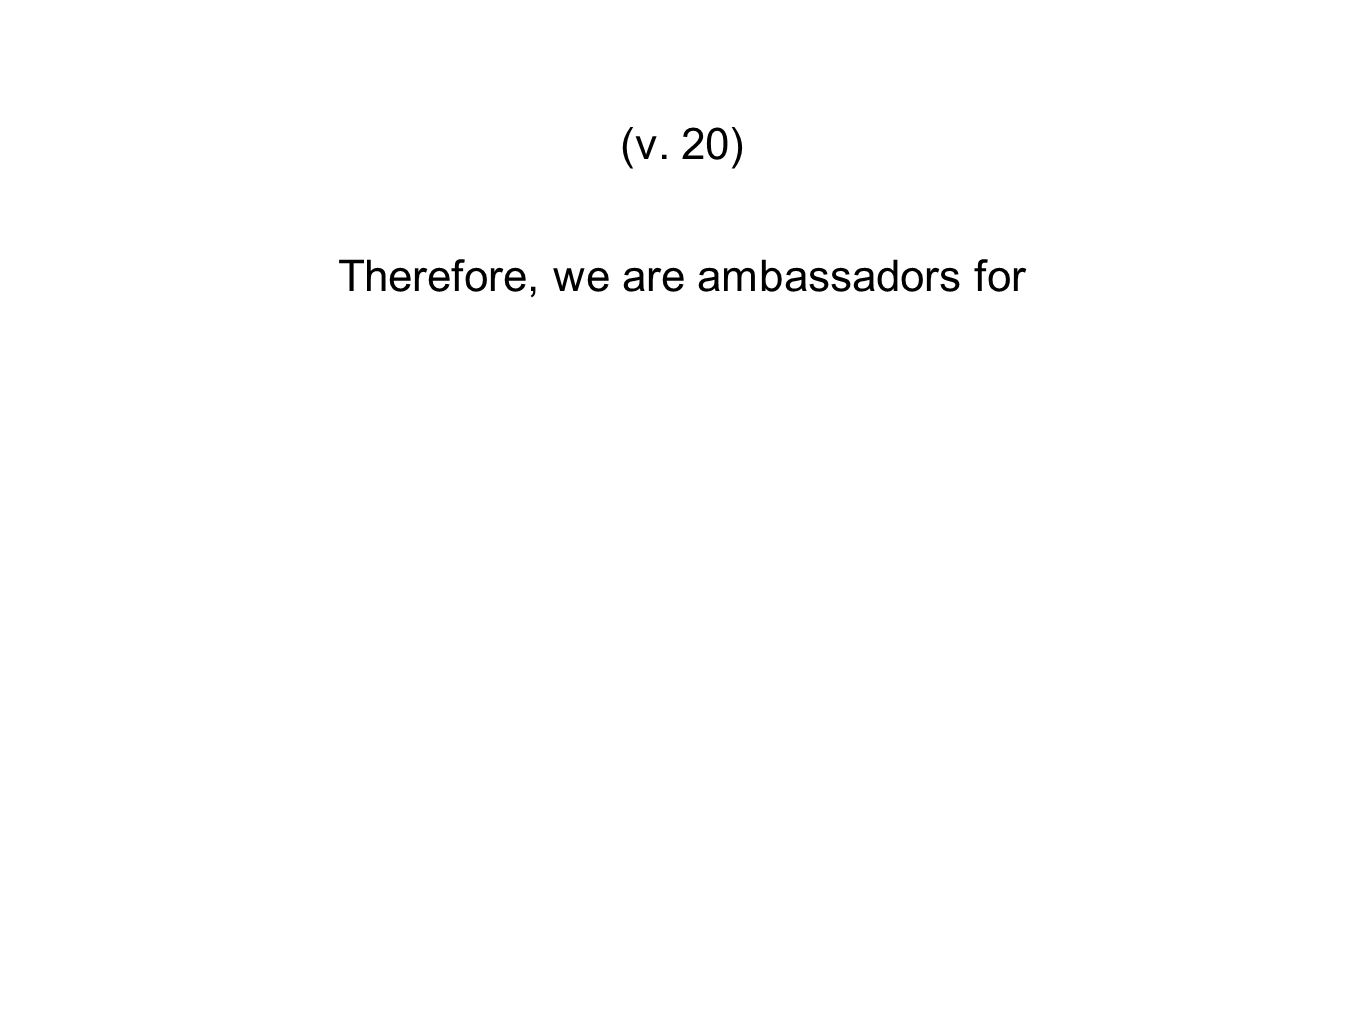 Therefore, we are ambassadors for